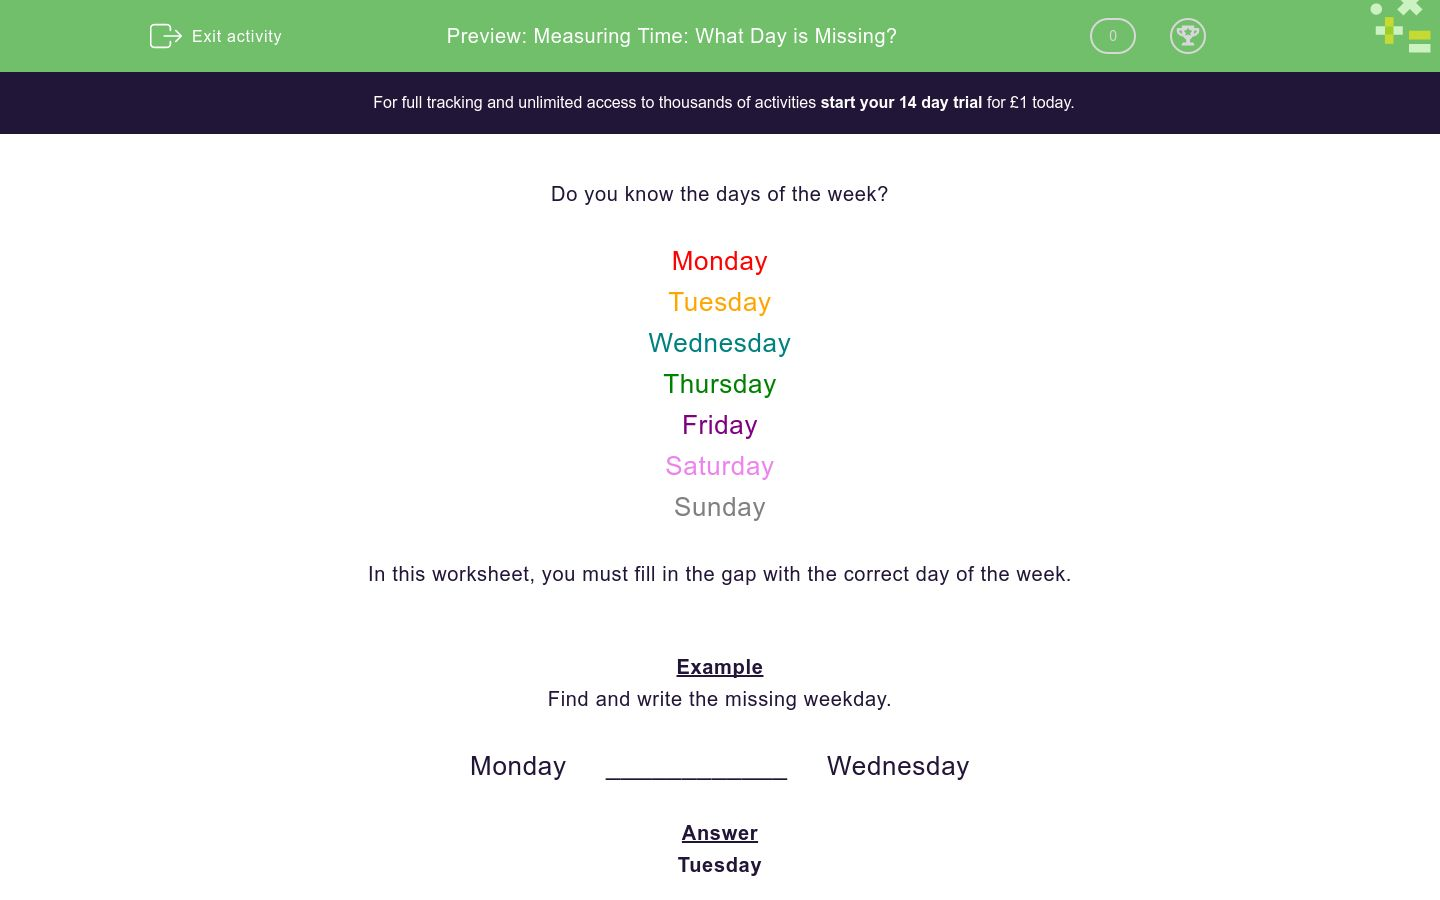 'Measuring Time: What Day is Missing?' worksheet